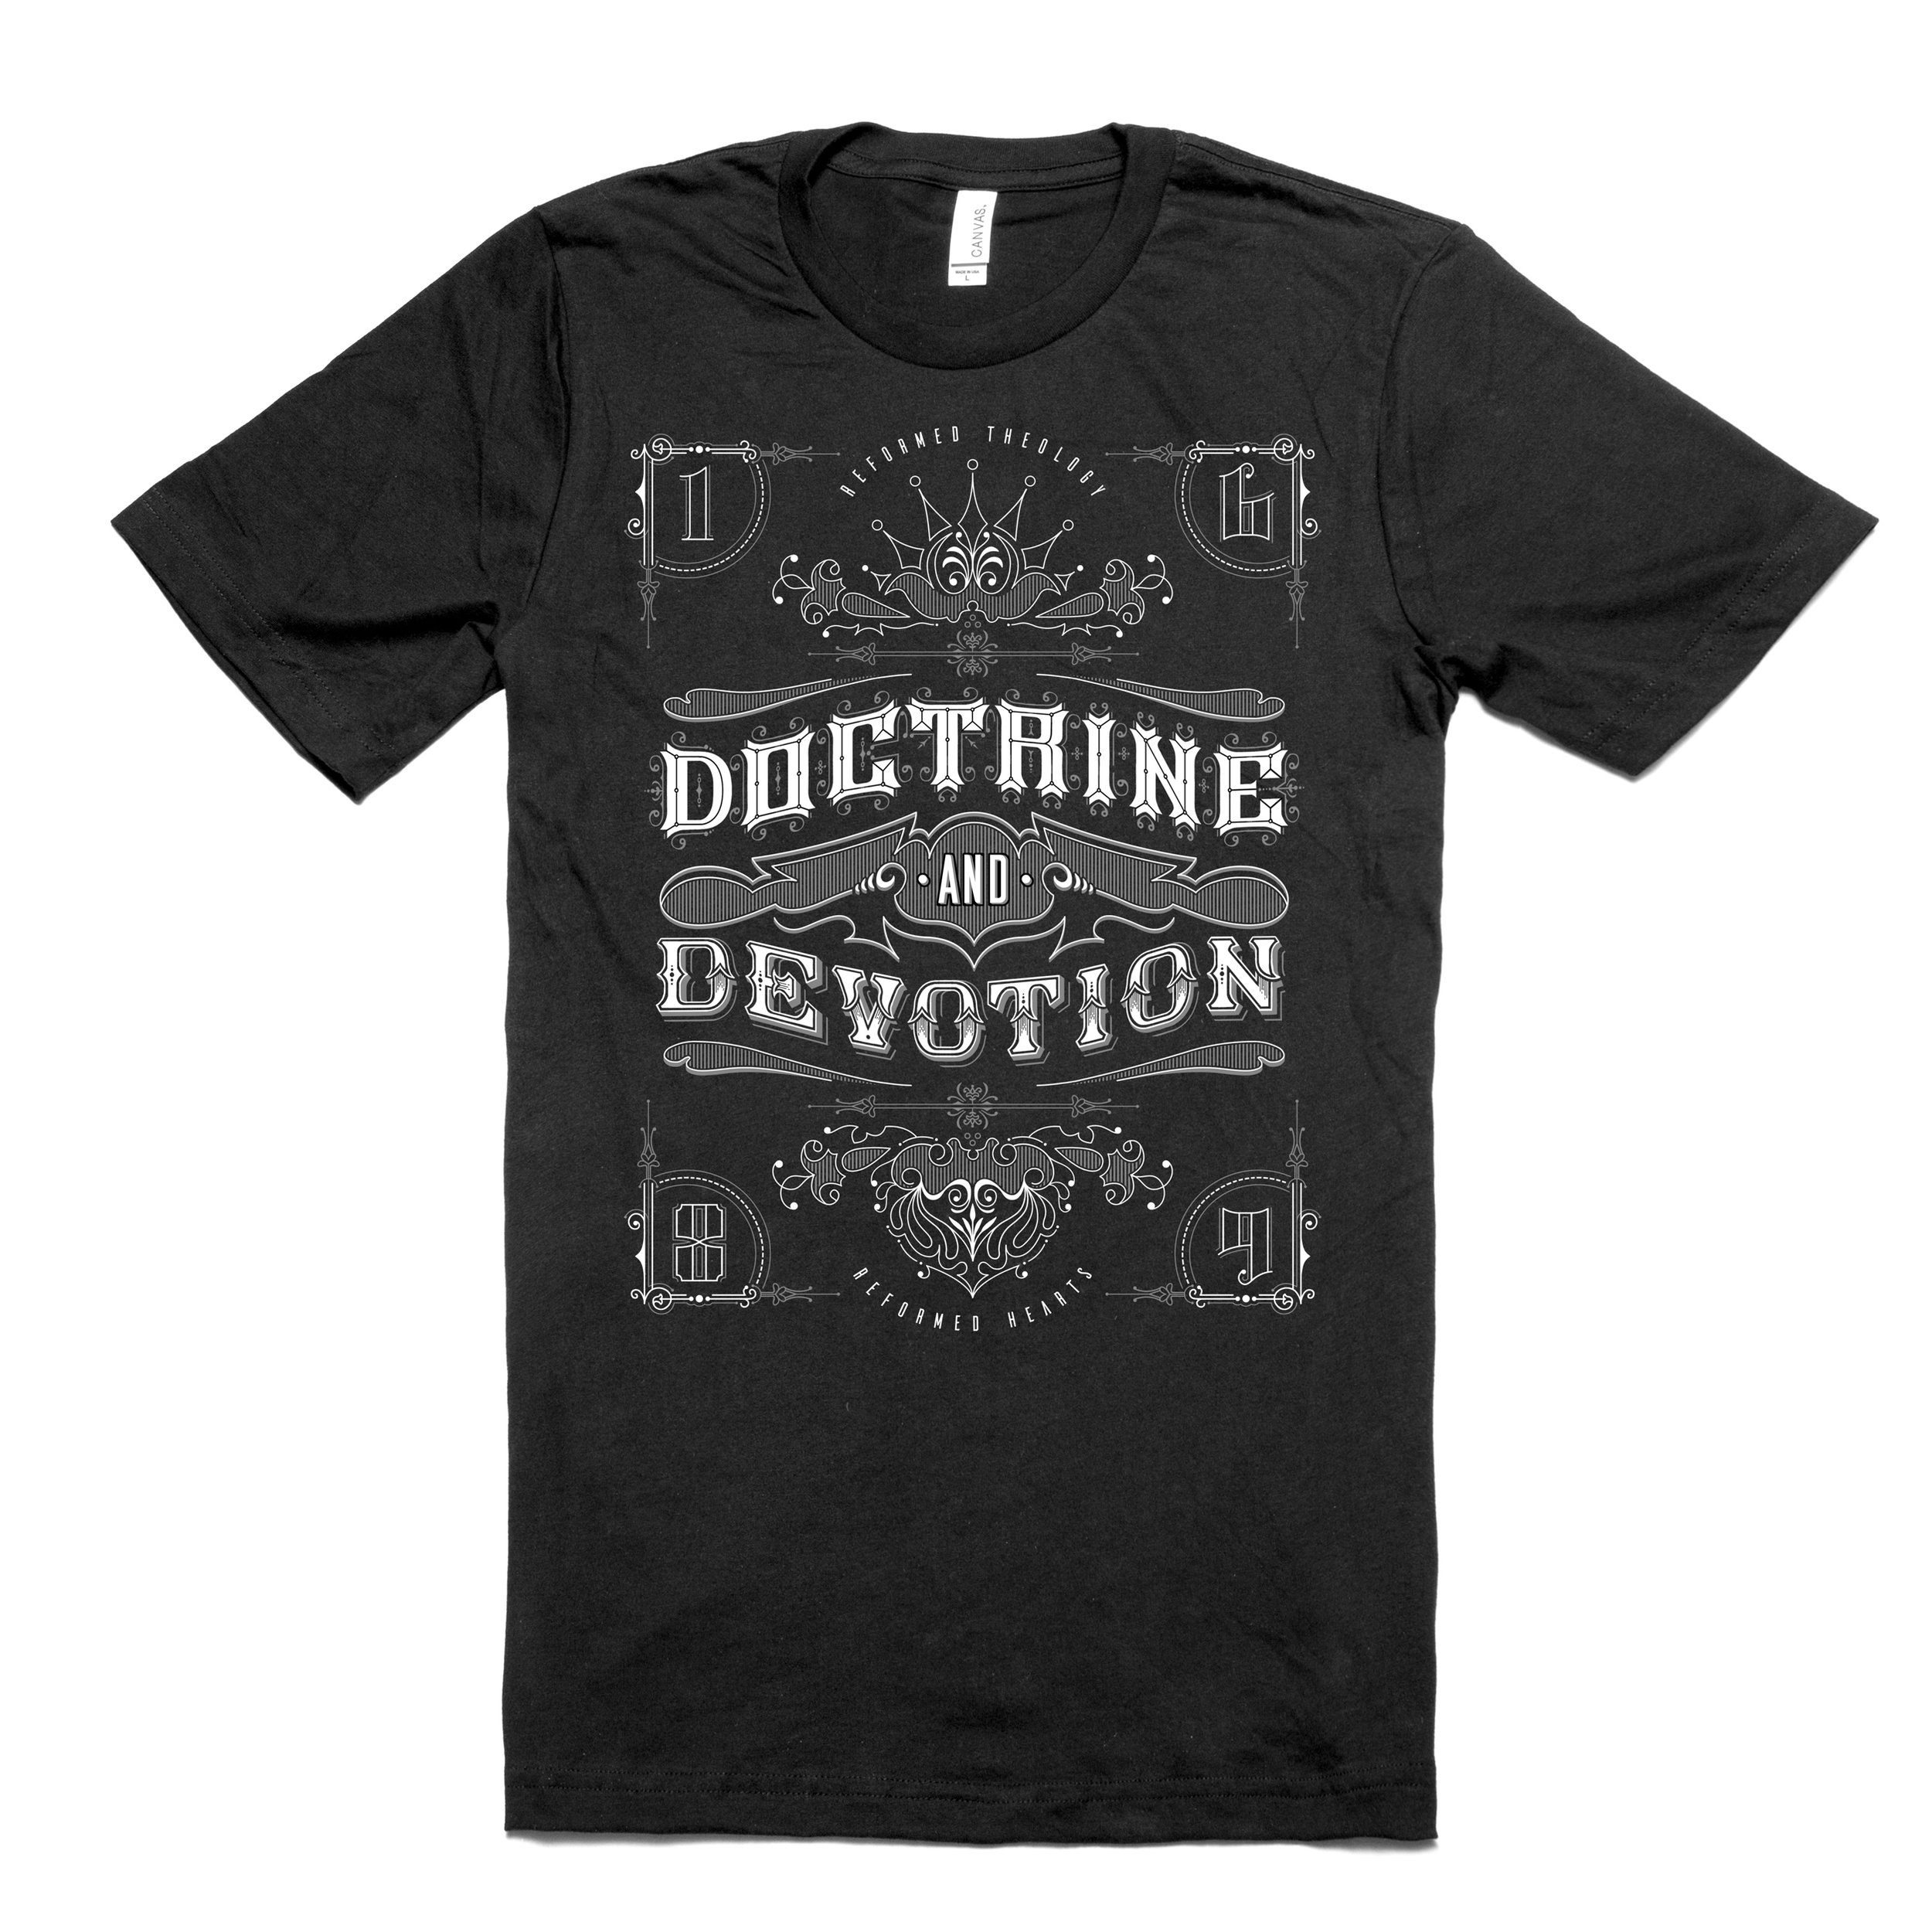 Did you get your official Doctrine and Devotion tee?  Go get some !